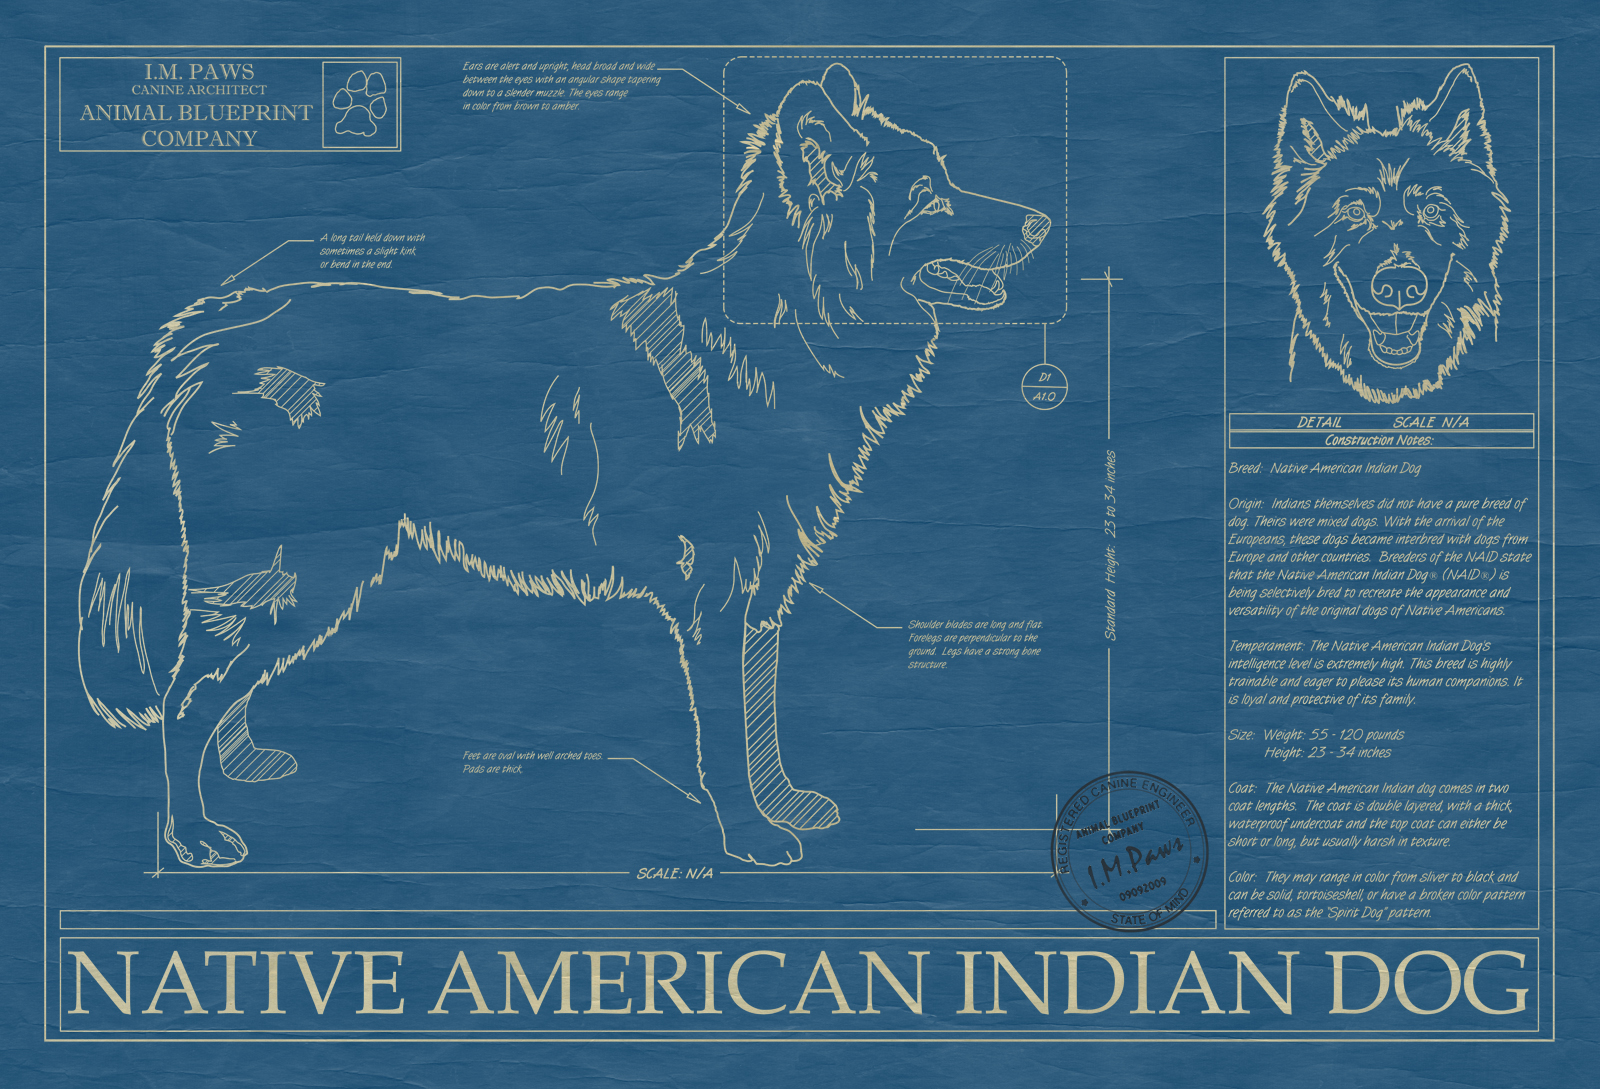 Native american indian dog animal blueprint company native american indian dog blueprint malvernweather Images